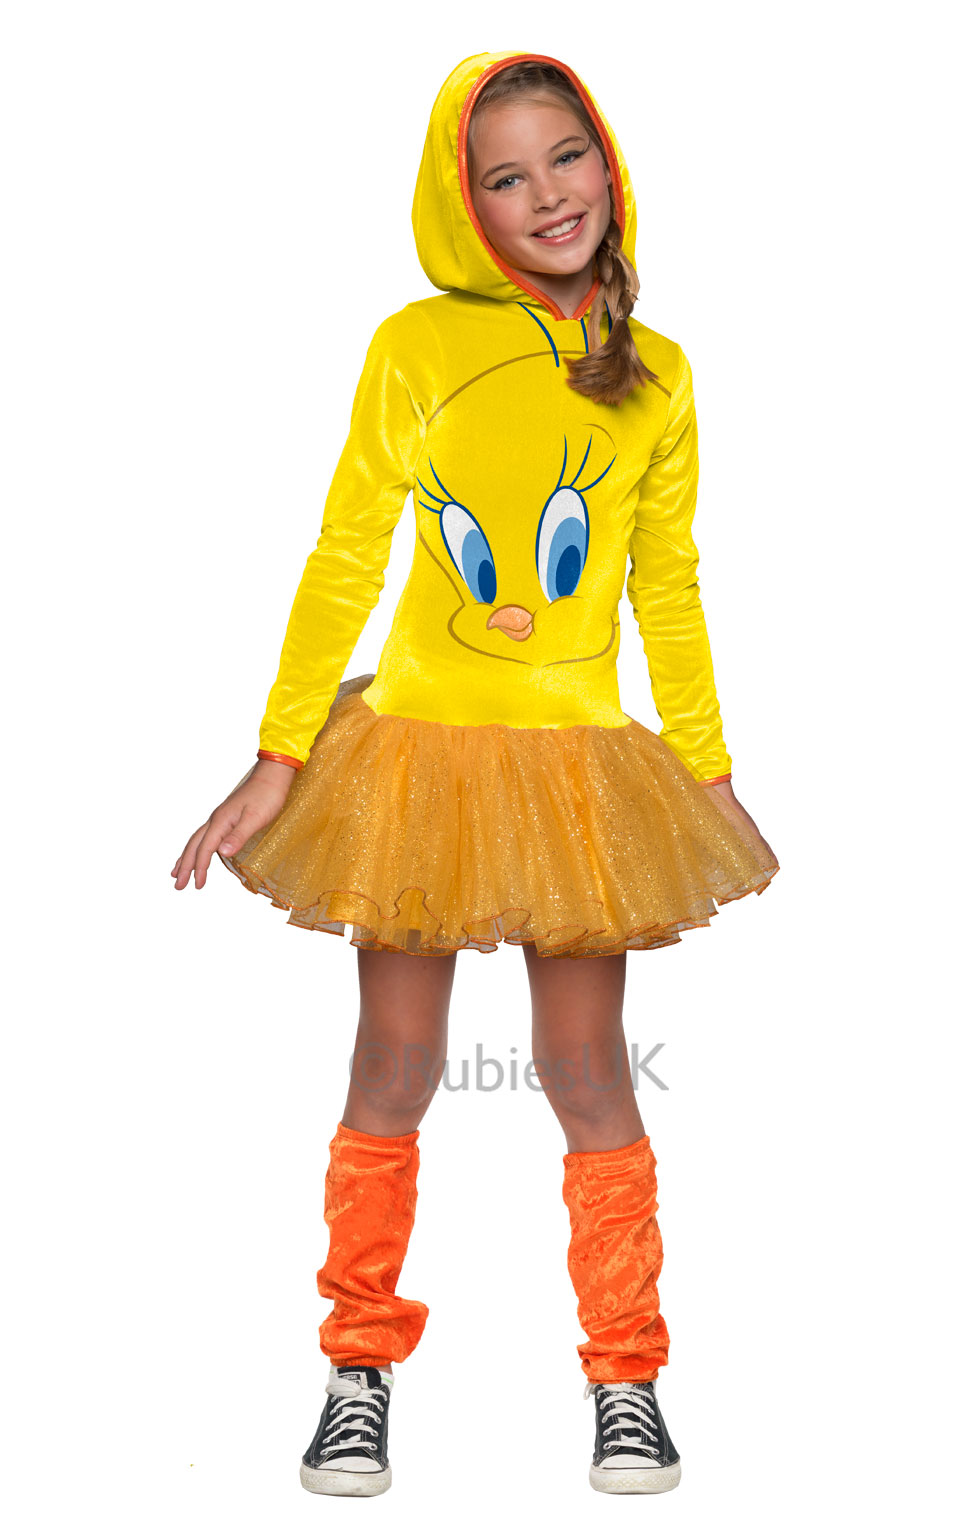 Cartoon Characters Outfits : Tweety pie girls cartoon character costume tv book and